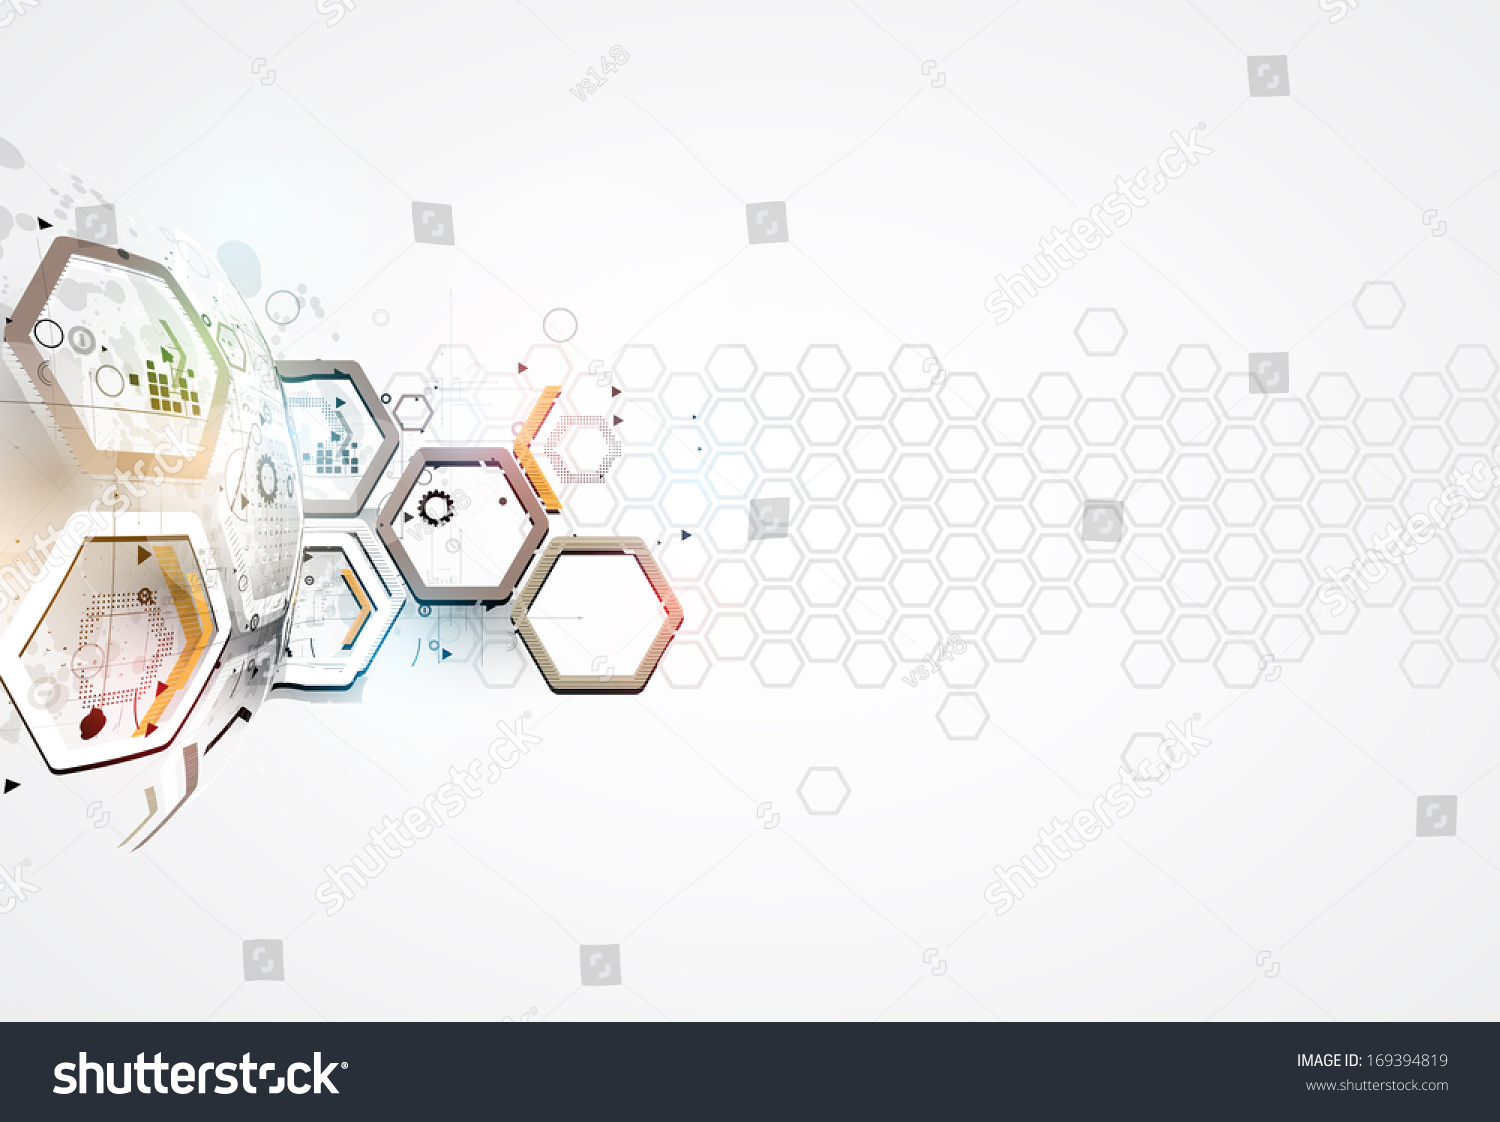 a comprehensive background in computer technology Browse and download free stock images about background computer technology for all of your creative needs thousands of free and premium stock photos.